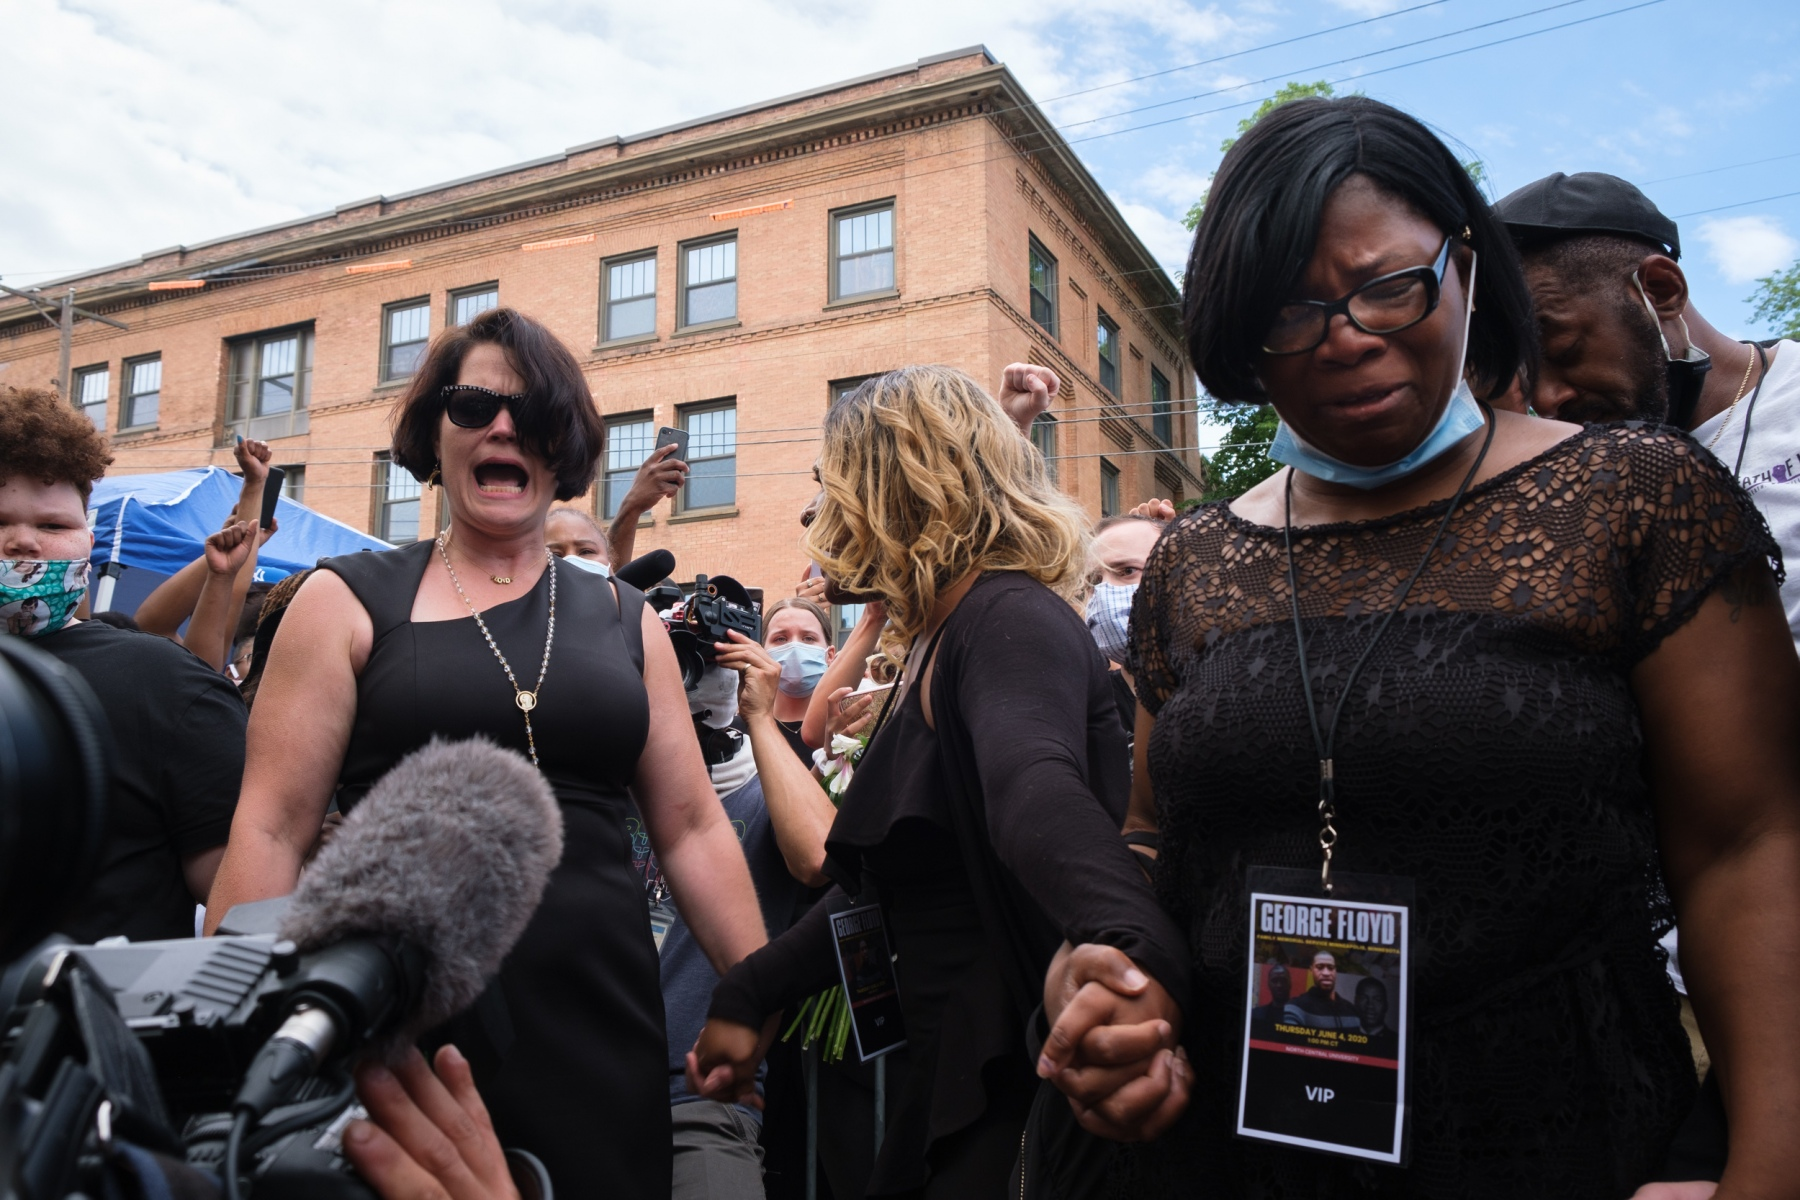 """Courtney Ross (left), Toshira Garraway (center), and Danielle Burns (right) link hands outside North Central University in Minneapolis on June 4, 2020, after leaving the funeral service for George Floyd. Burns' brother, Jamar Clark, was shot by Minneapolis police officers in 2015; Garraway's fiancee, Justin Teigen, died after an encounter with the Saint Paul Police in 2009; and Ross was Floyd's fiancee. """"They tried to separate us and keep us quiet,"""" screams Garraway. """"But we're together now. And we fighting together."""""""